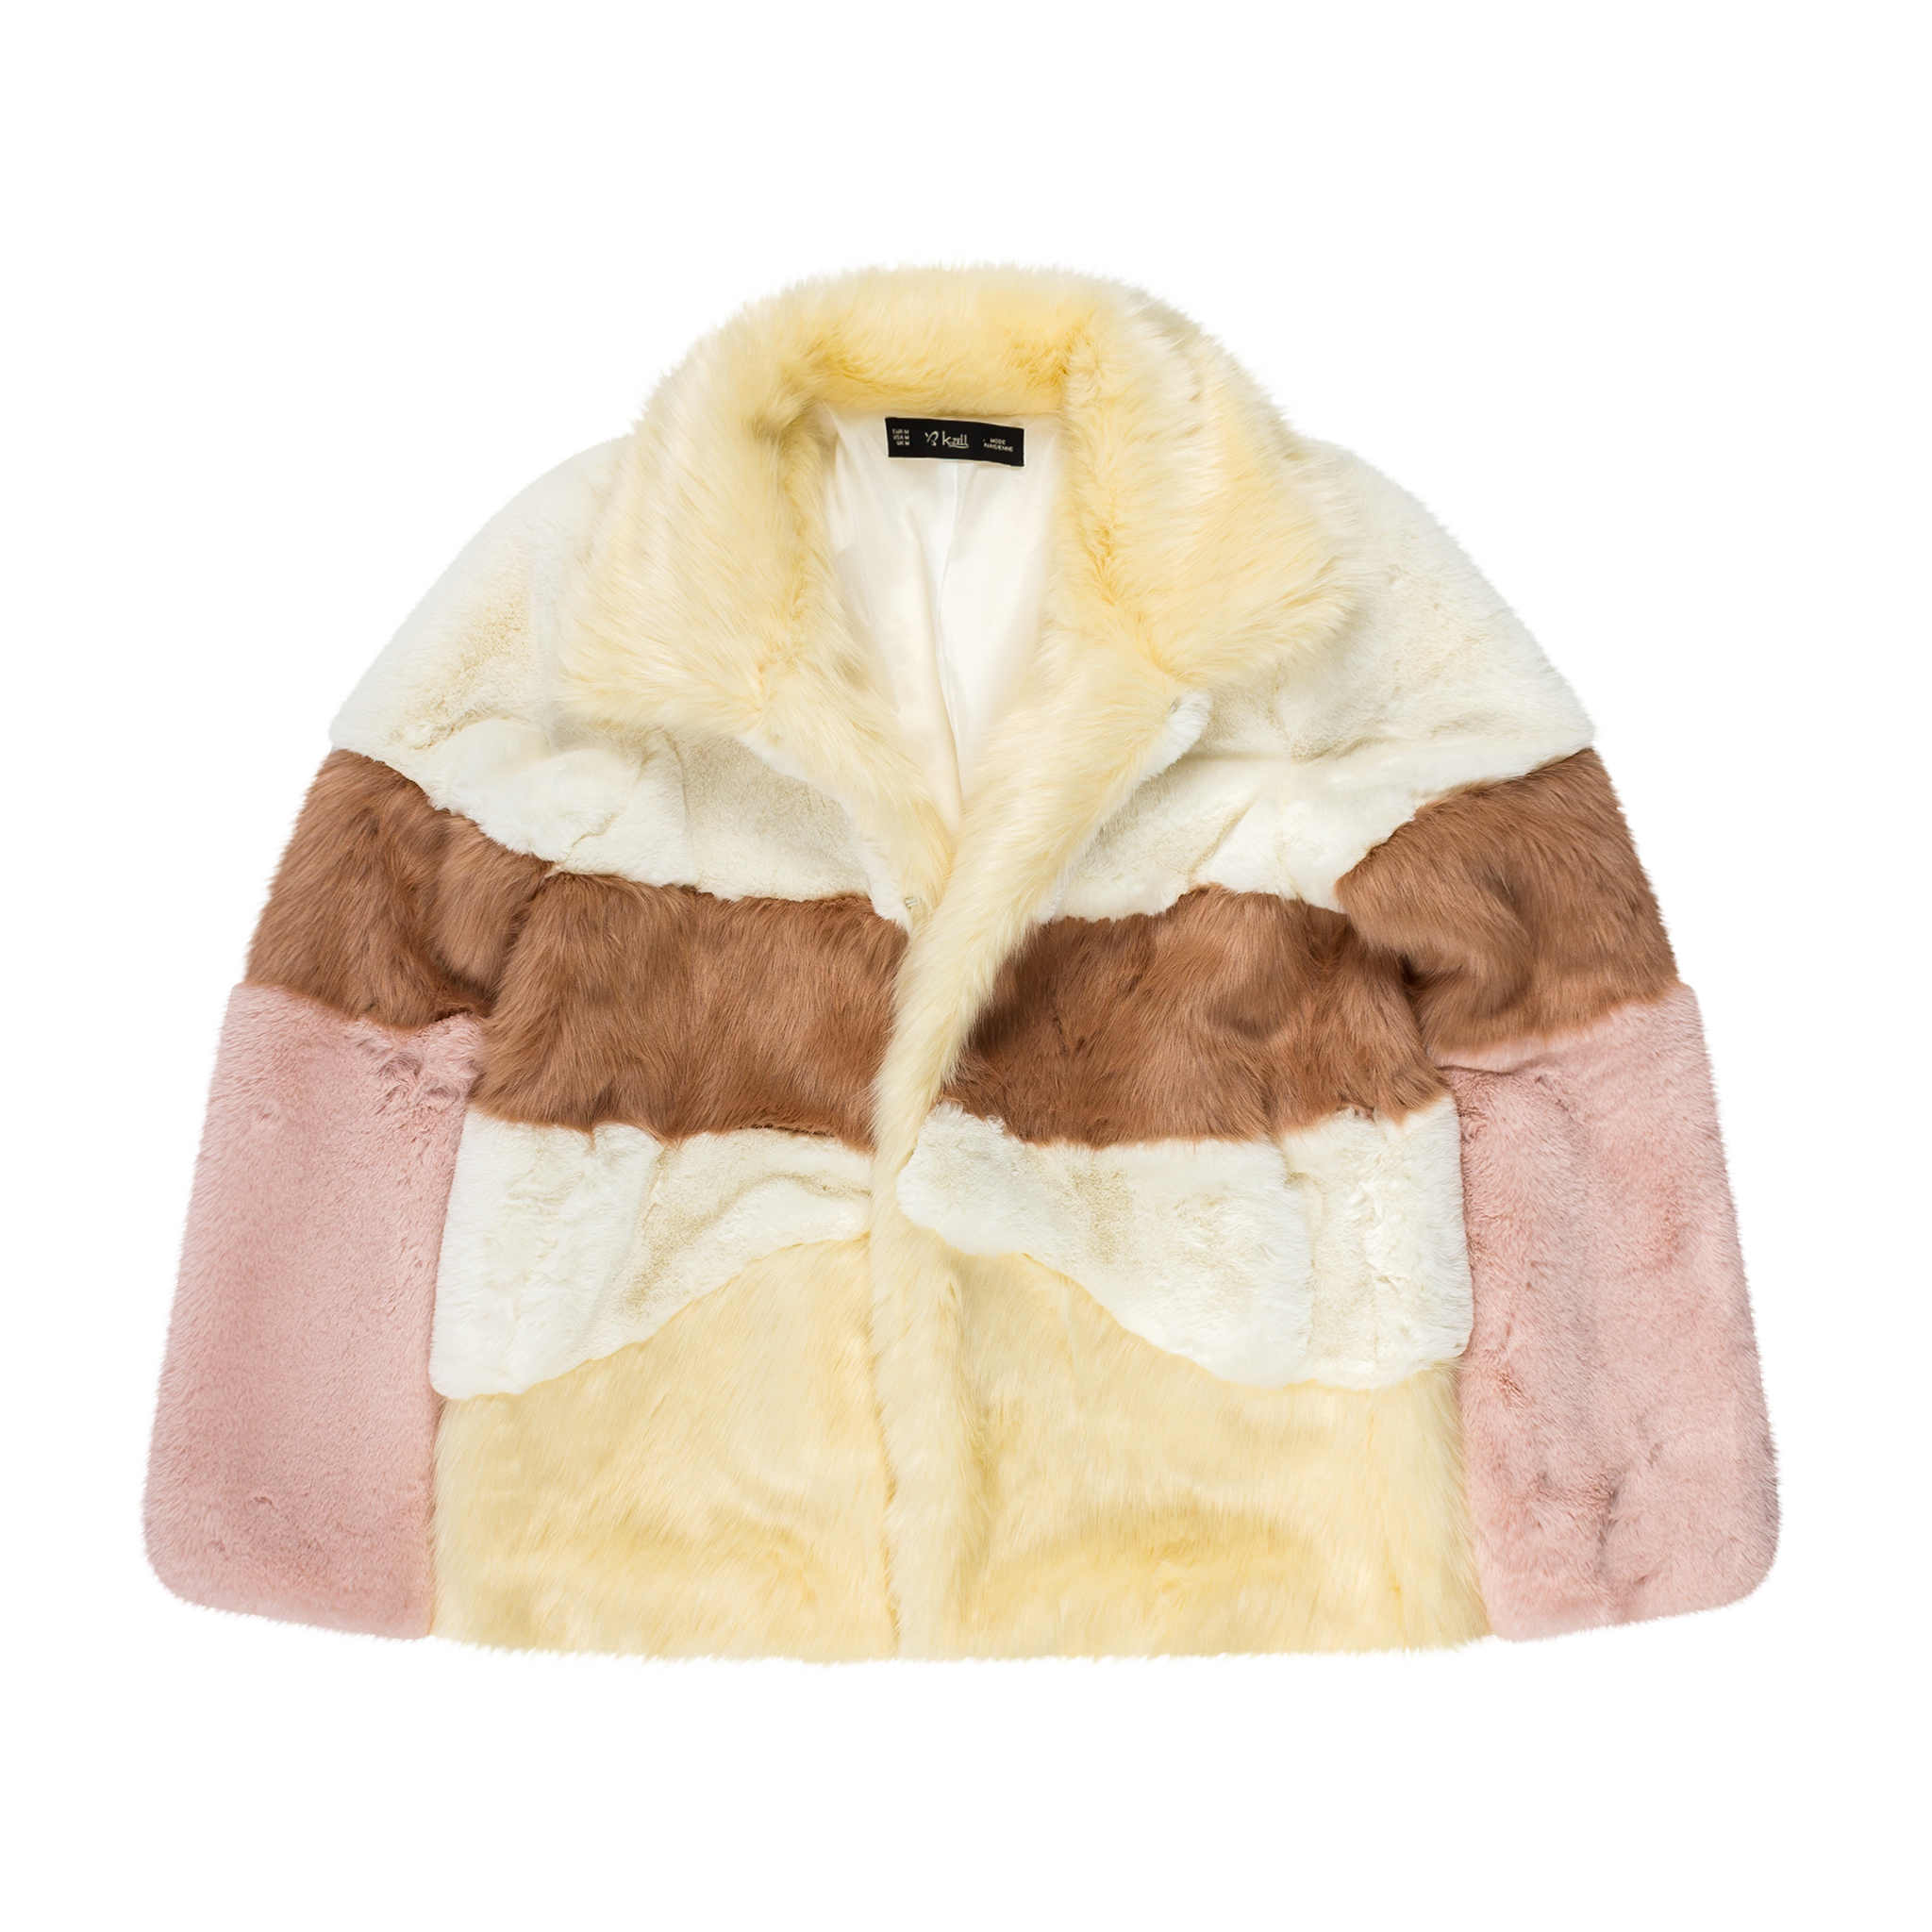 coat product photo